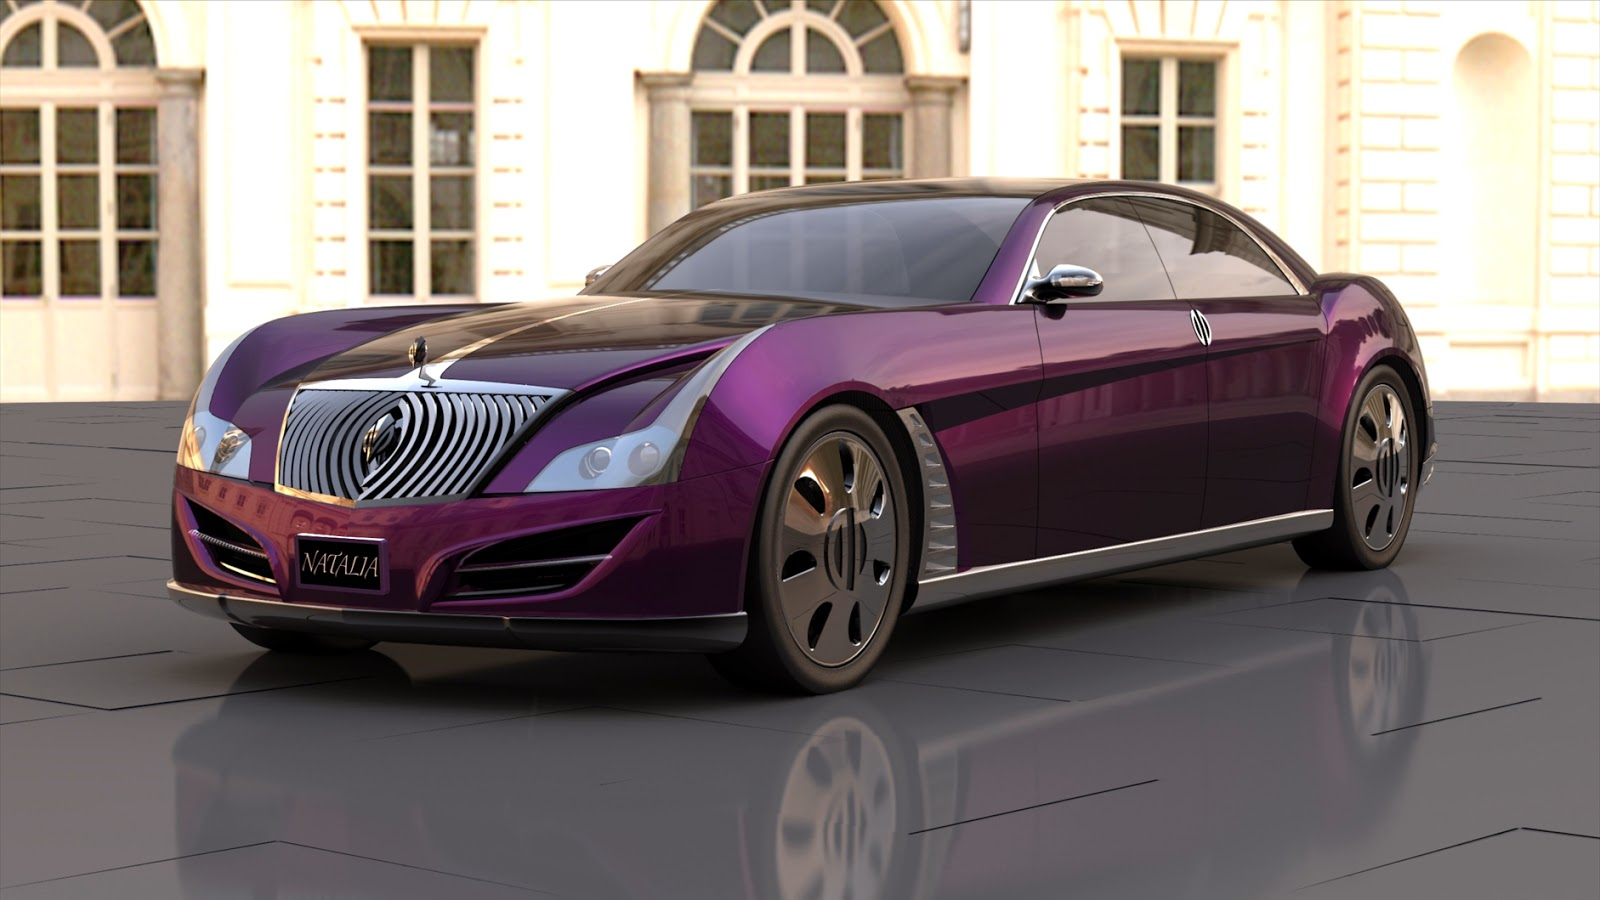 Luxury Life Design: $2 Million Luxury Car Concept - DiMora Natalia